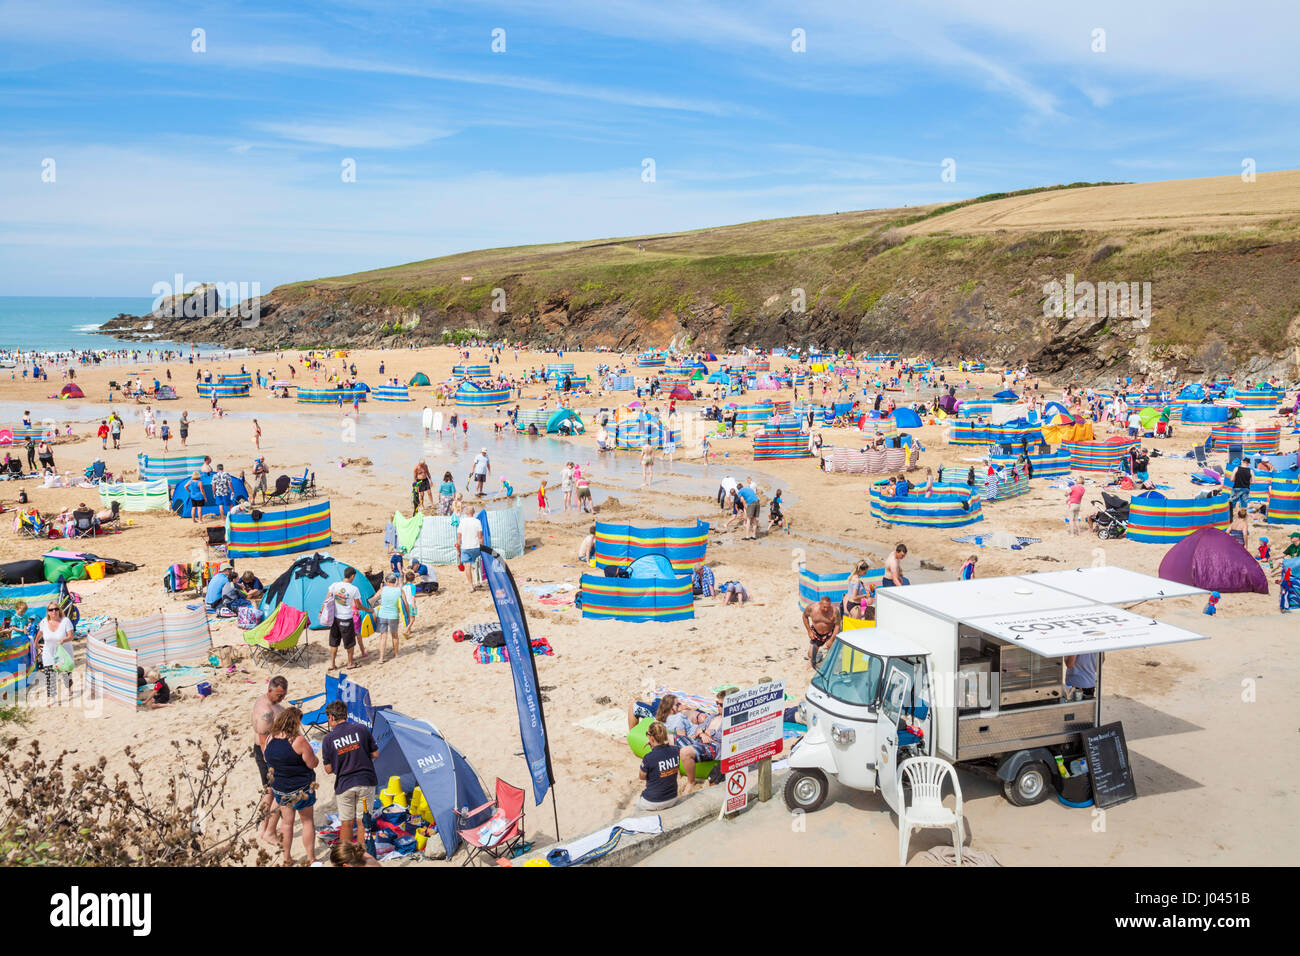 Trevone bay cornwall Trevone bay Seaside village and busy beach packed with holidaymakers cornwall Cornwall west - Stock Image